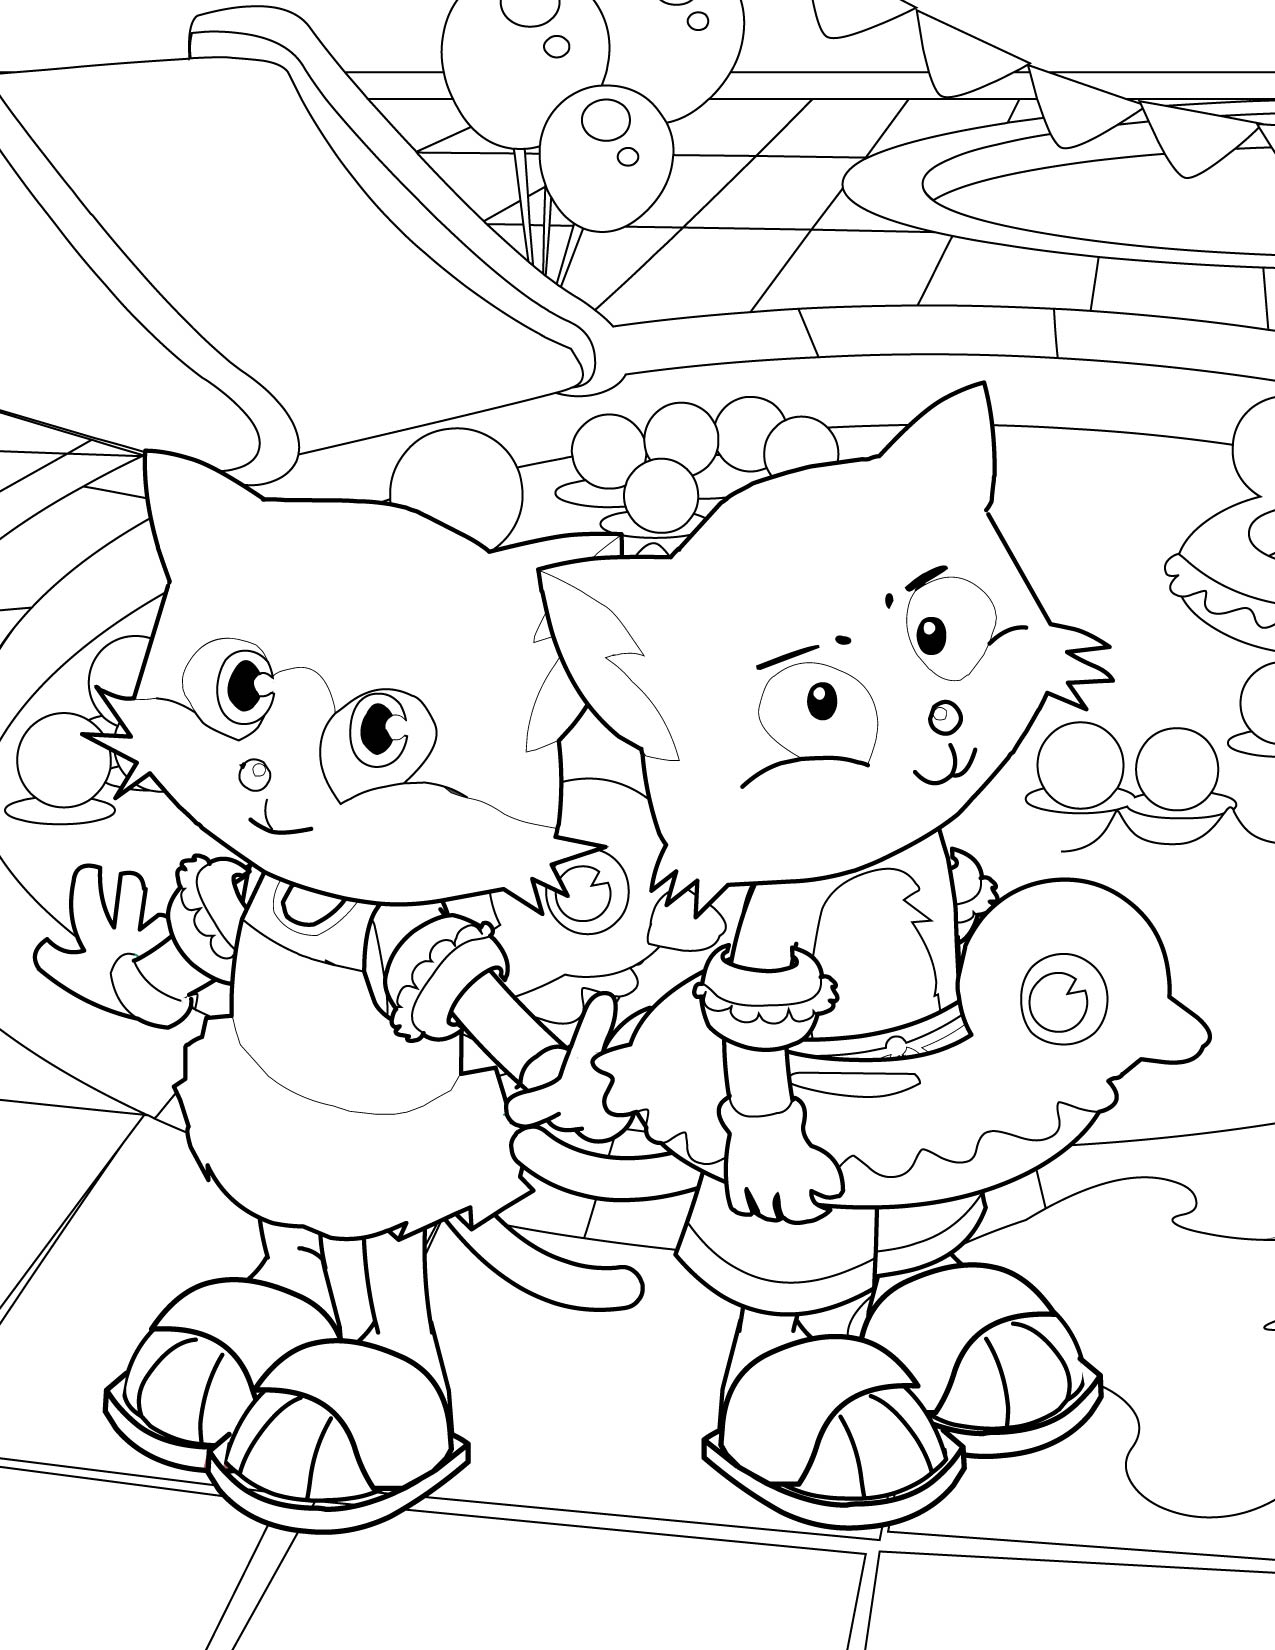 pool coloring page - handipoints coloring pages